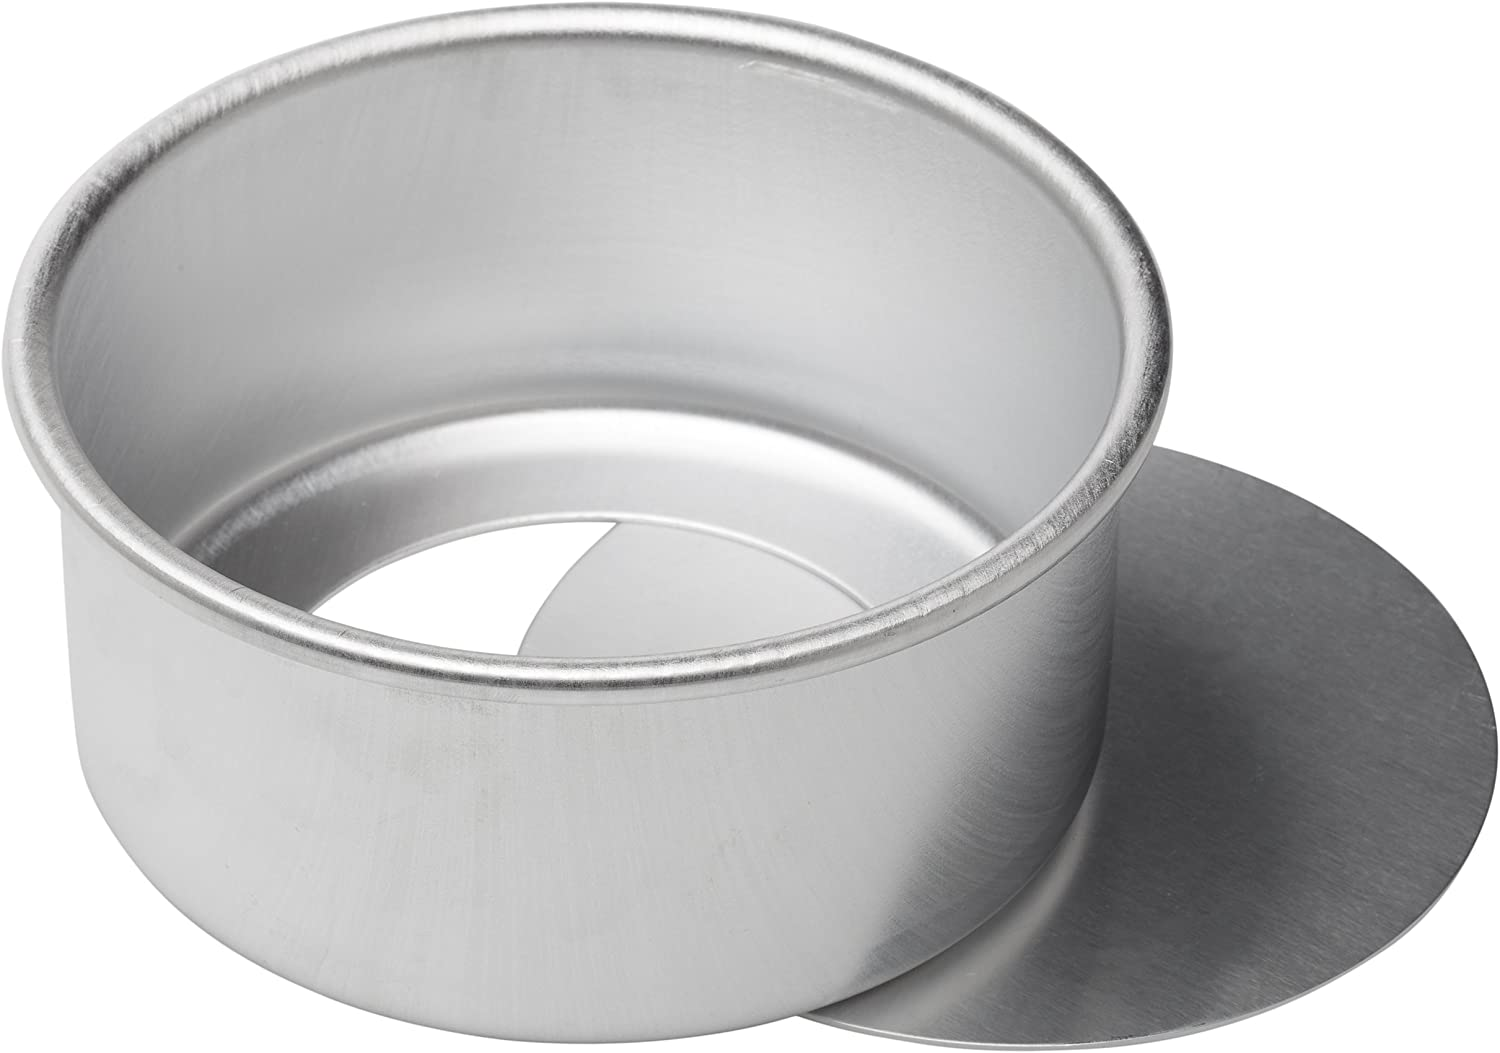 Ateco Aluminum Cake Pan with Removable Bottom 8 by 3-Inch 12083 Round